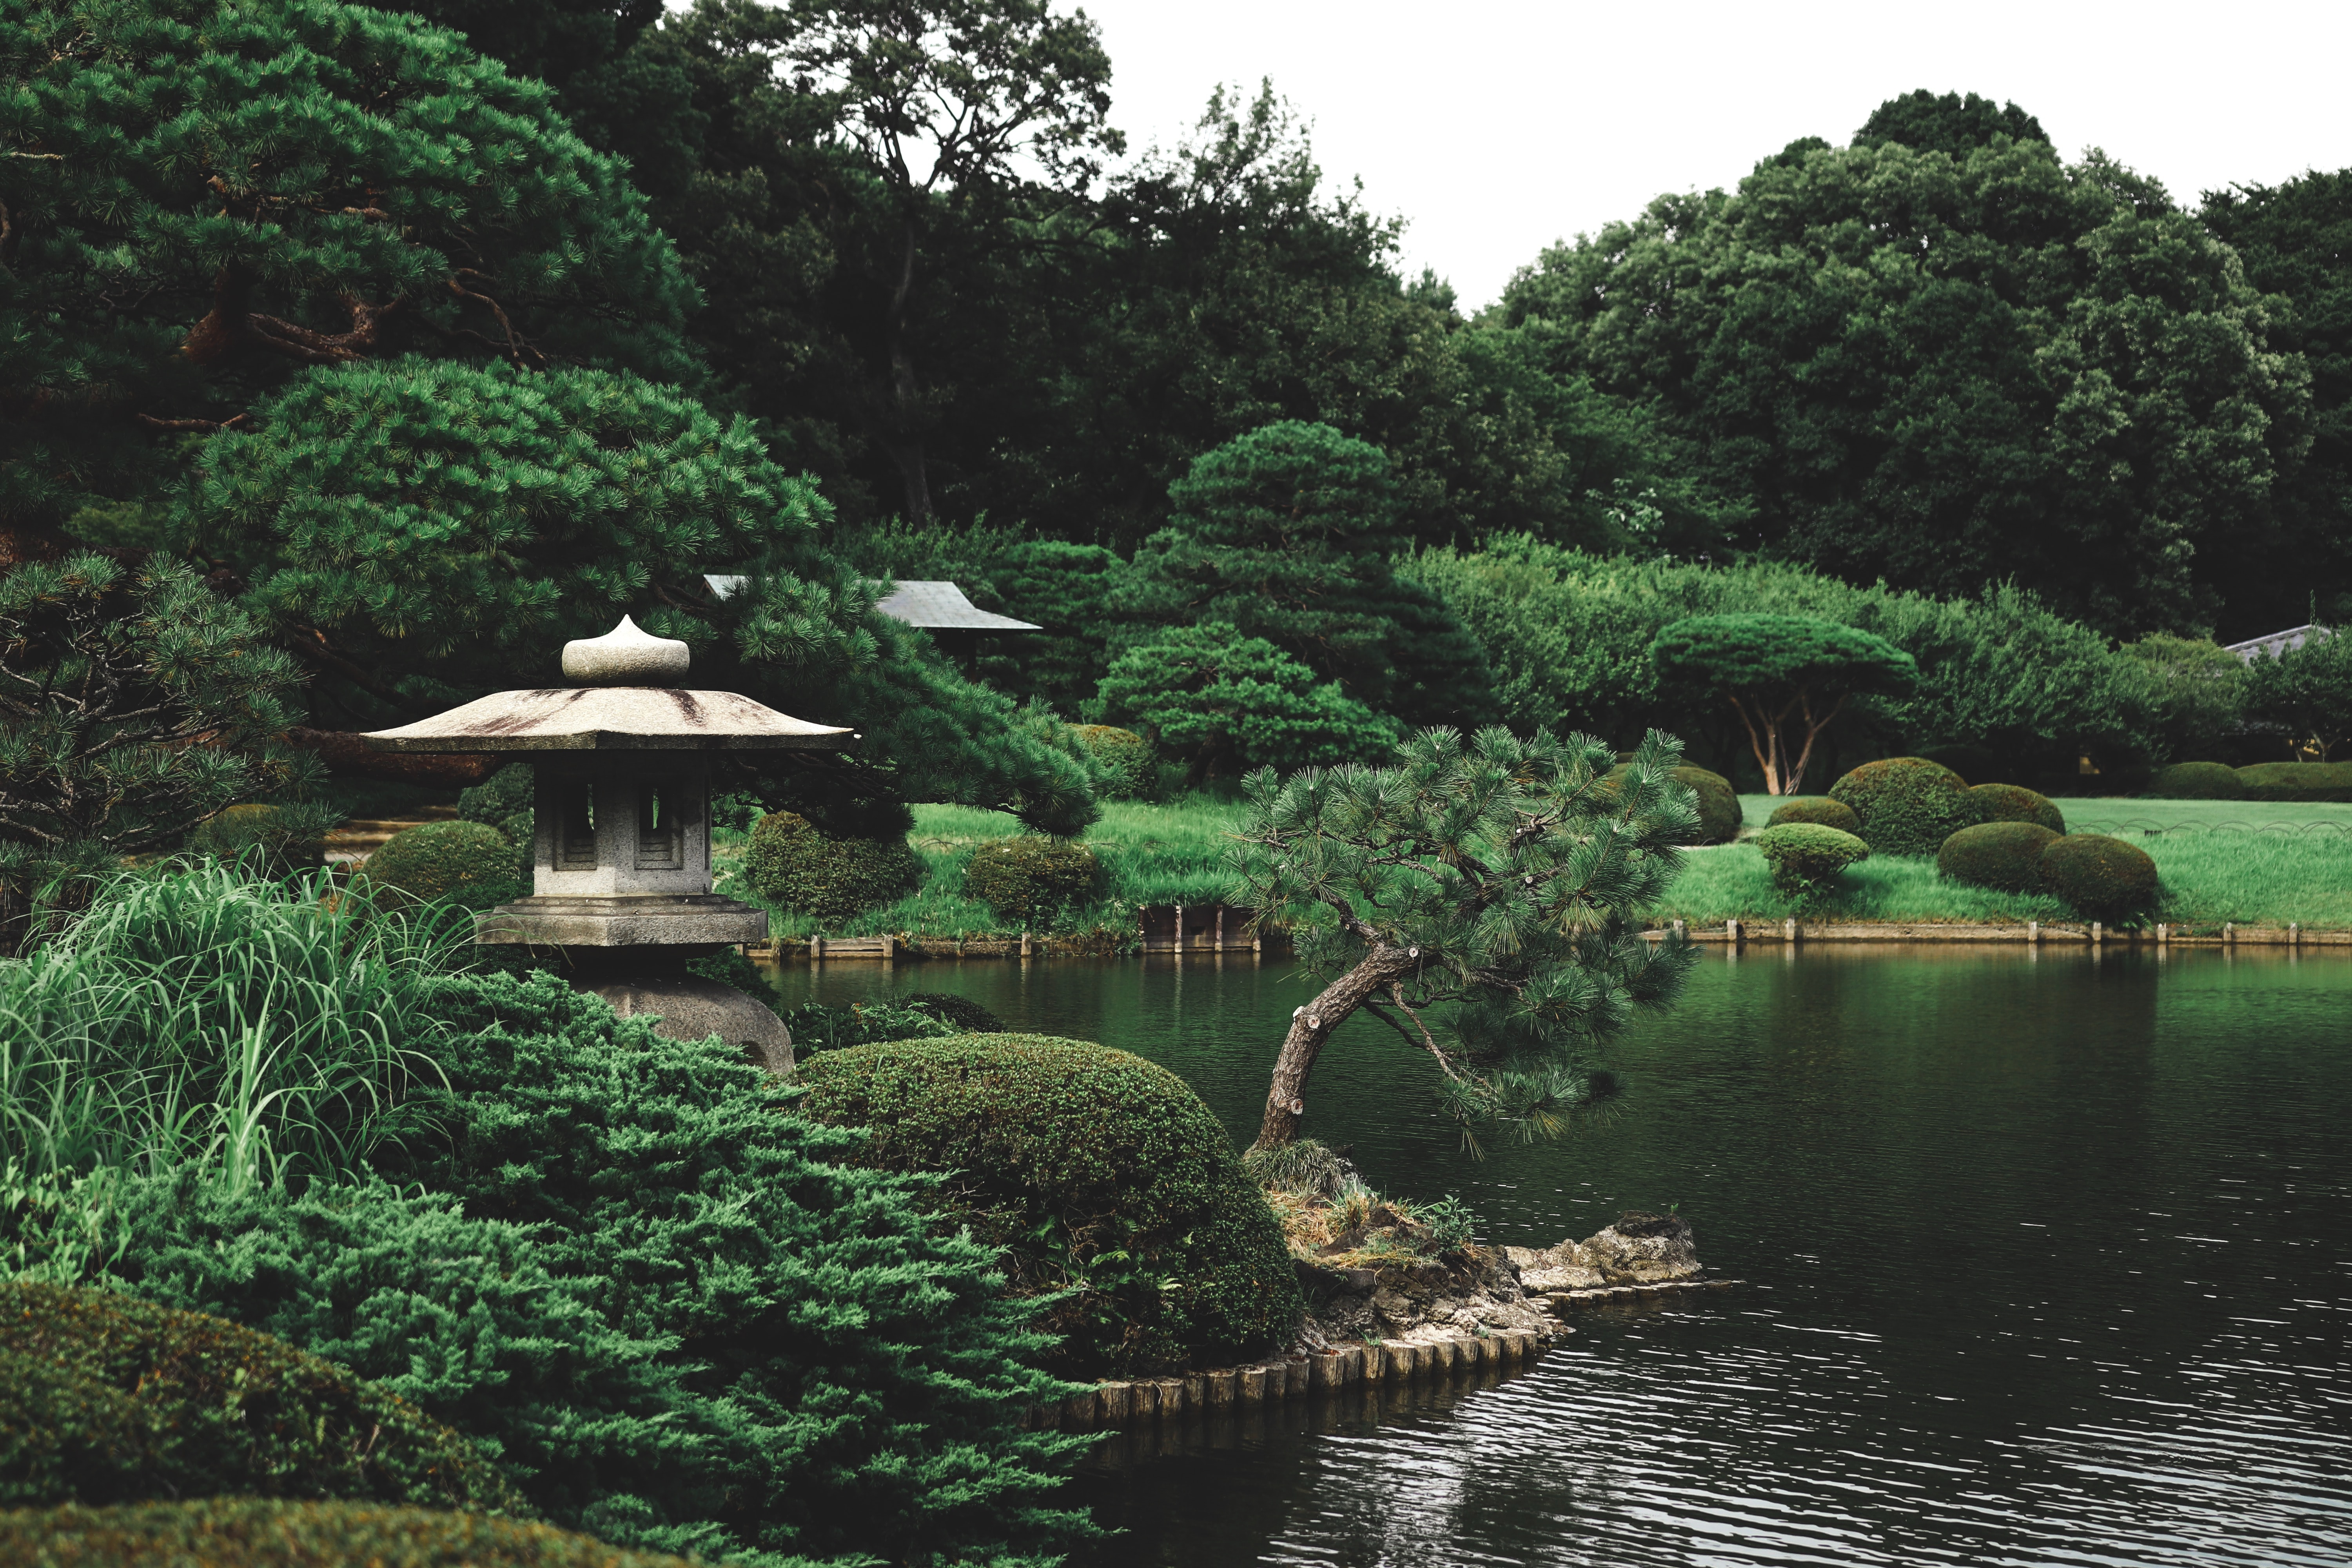 Join me in Japan! May 20-26, 2022